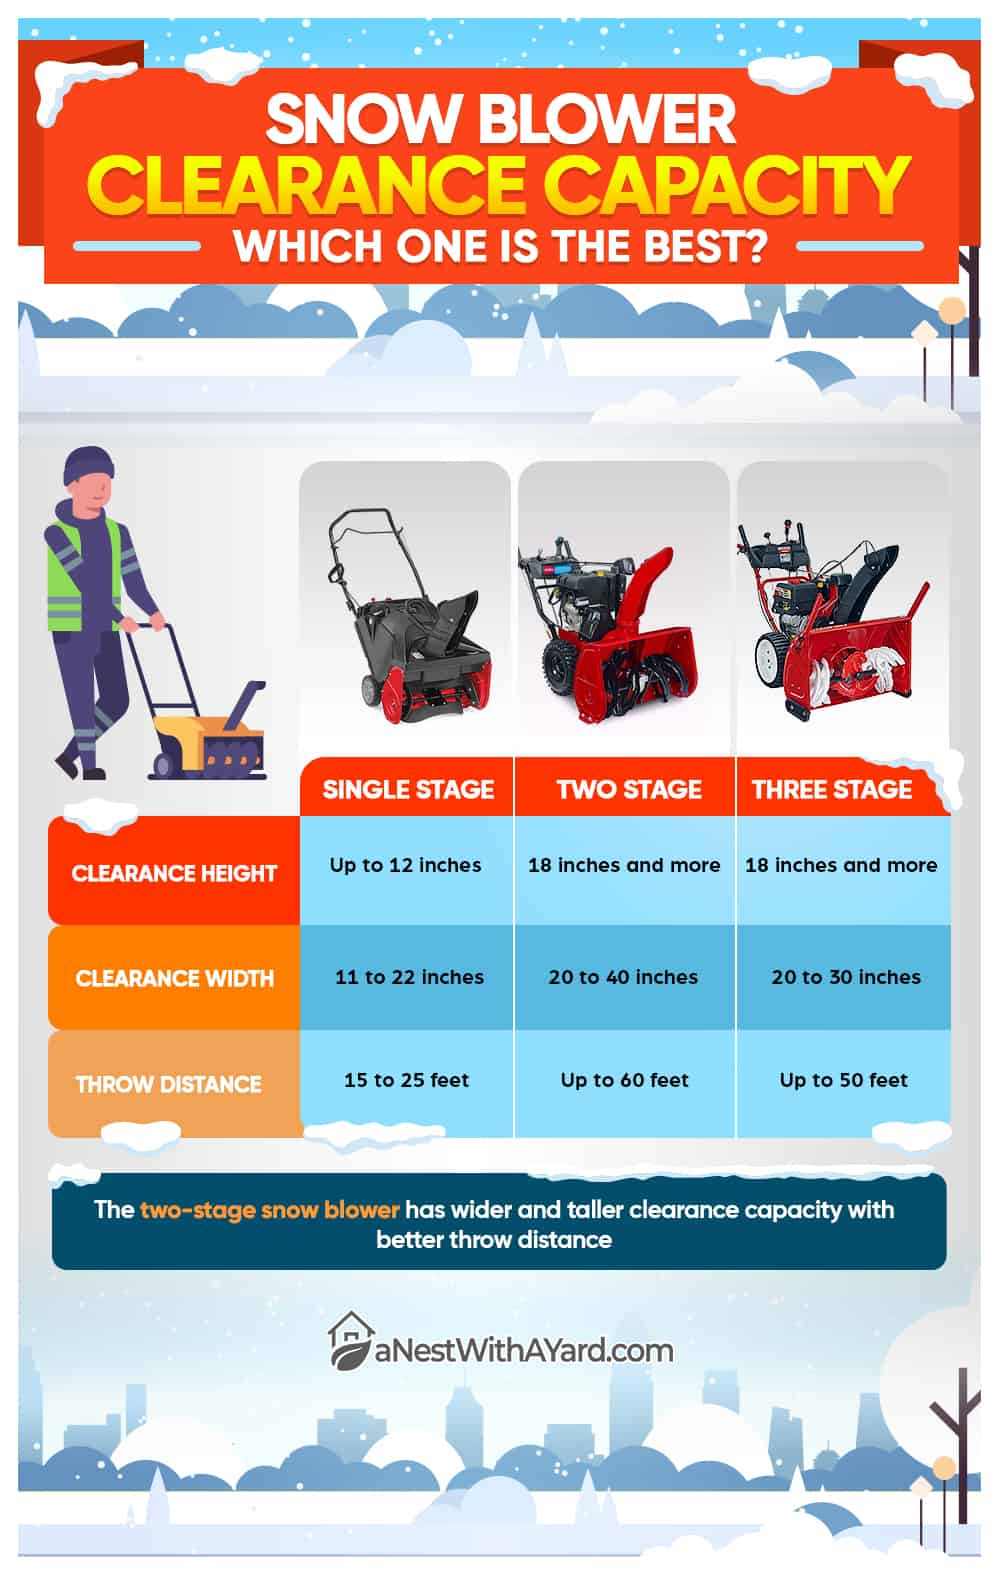 Snowblower clearance capacity